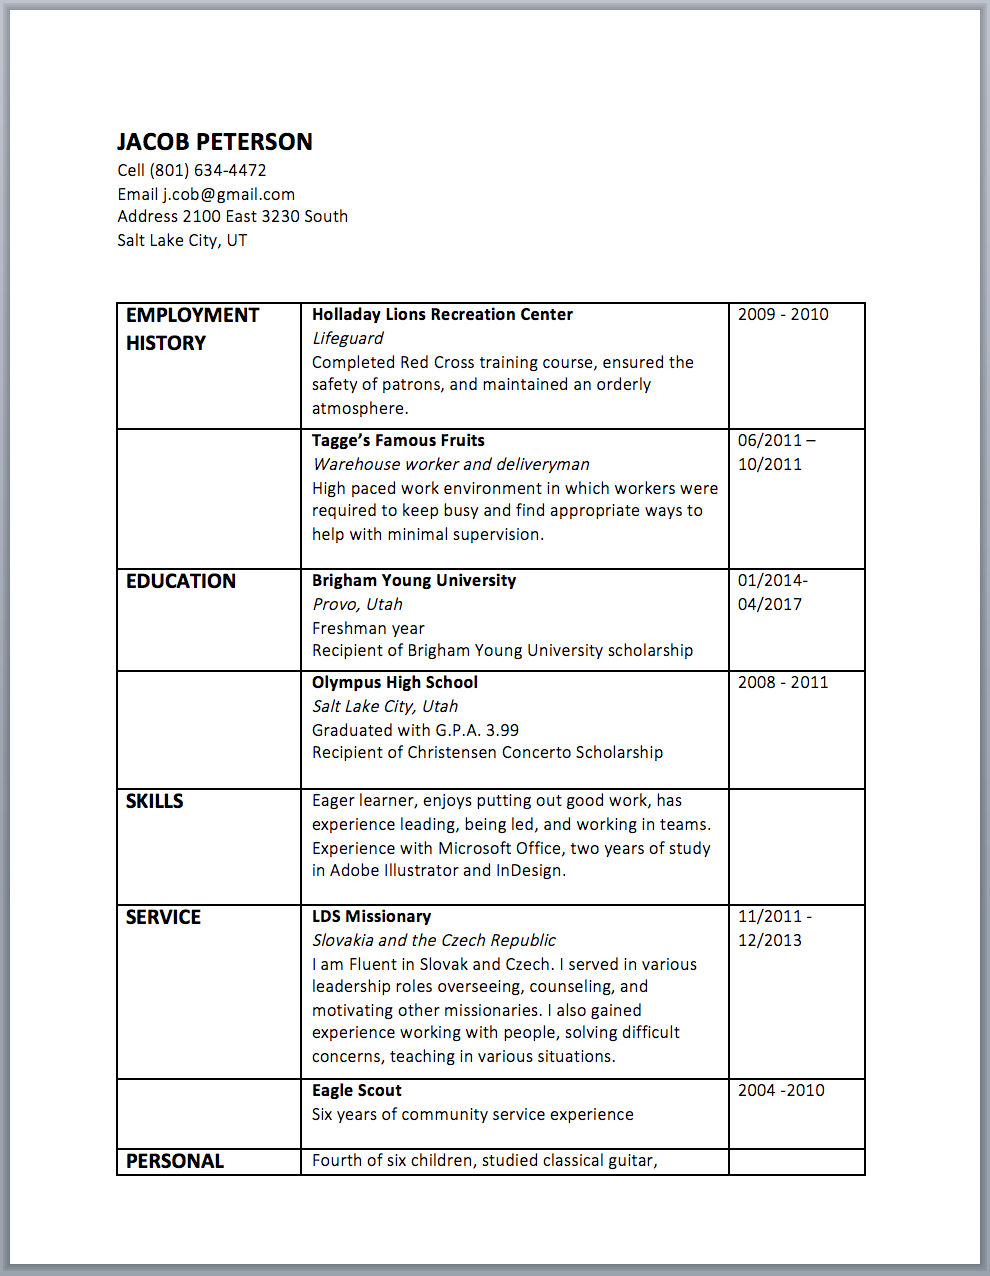 How To: Design a Resume in Microsoft Word (And Other Design Tips ...